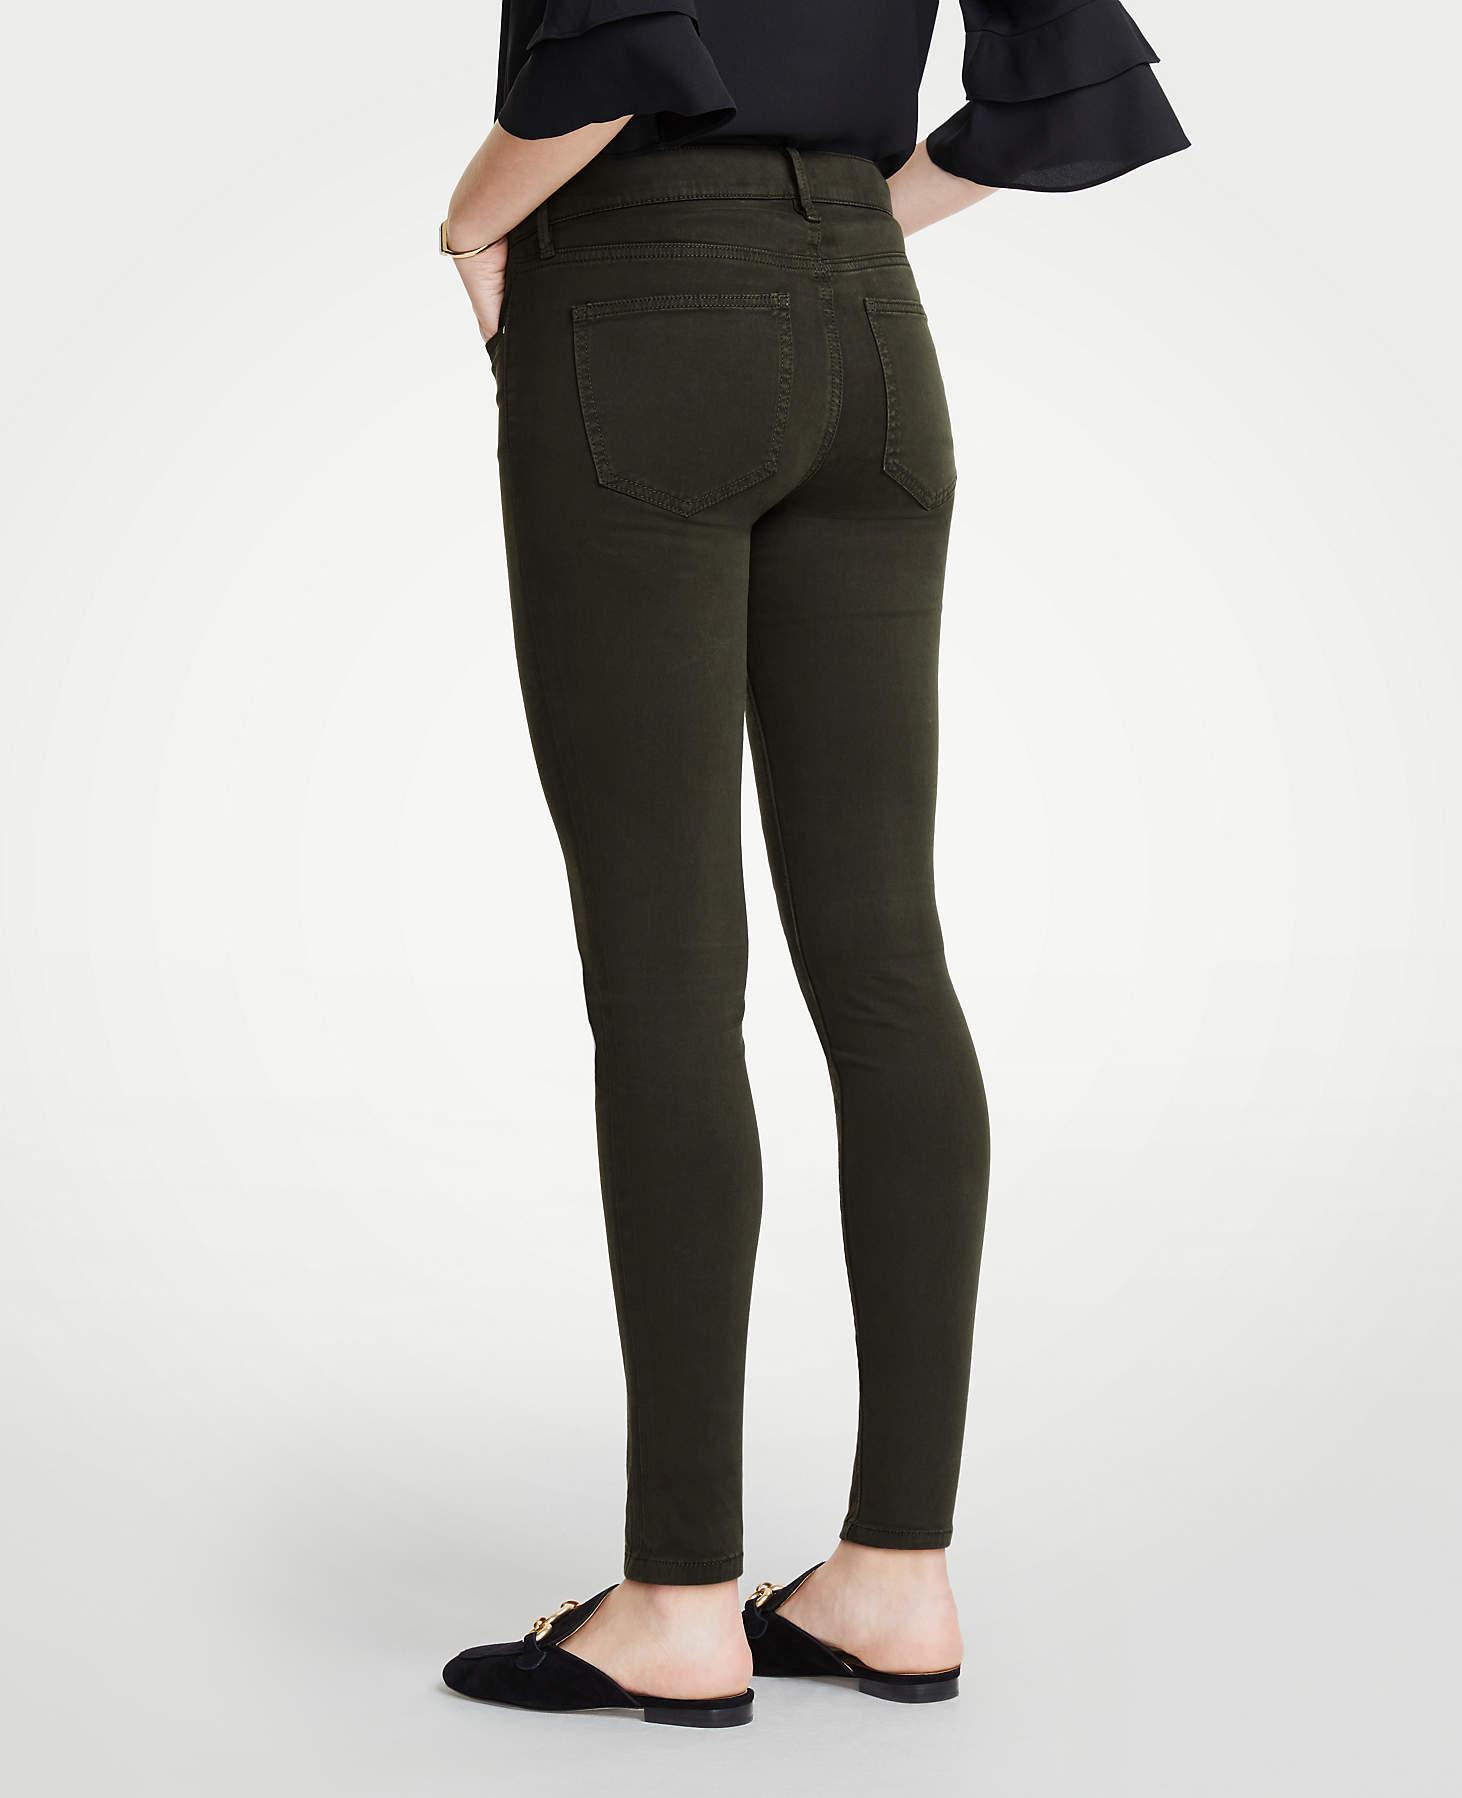 Ann Taylor Denim Petite Curvy Performance Stretch Skinny Jeans In Sateen in Black